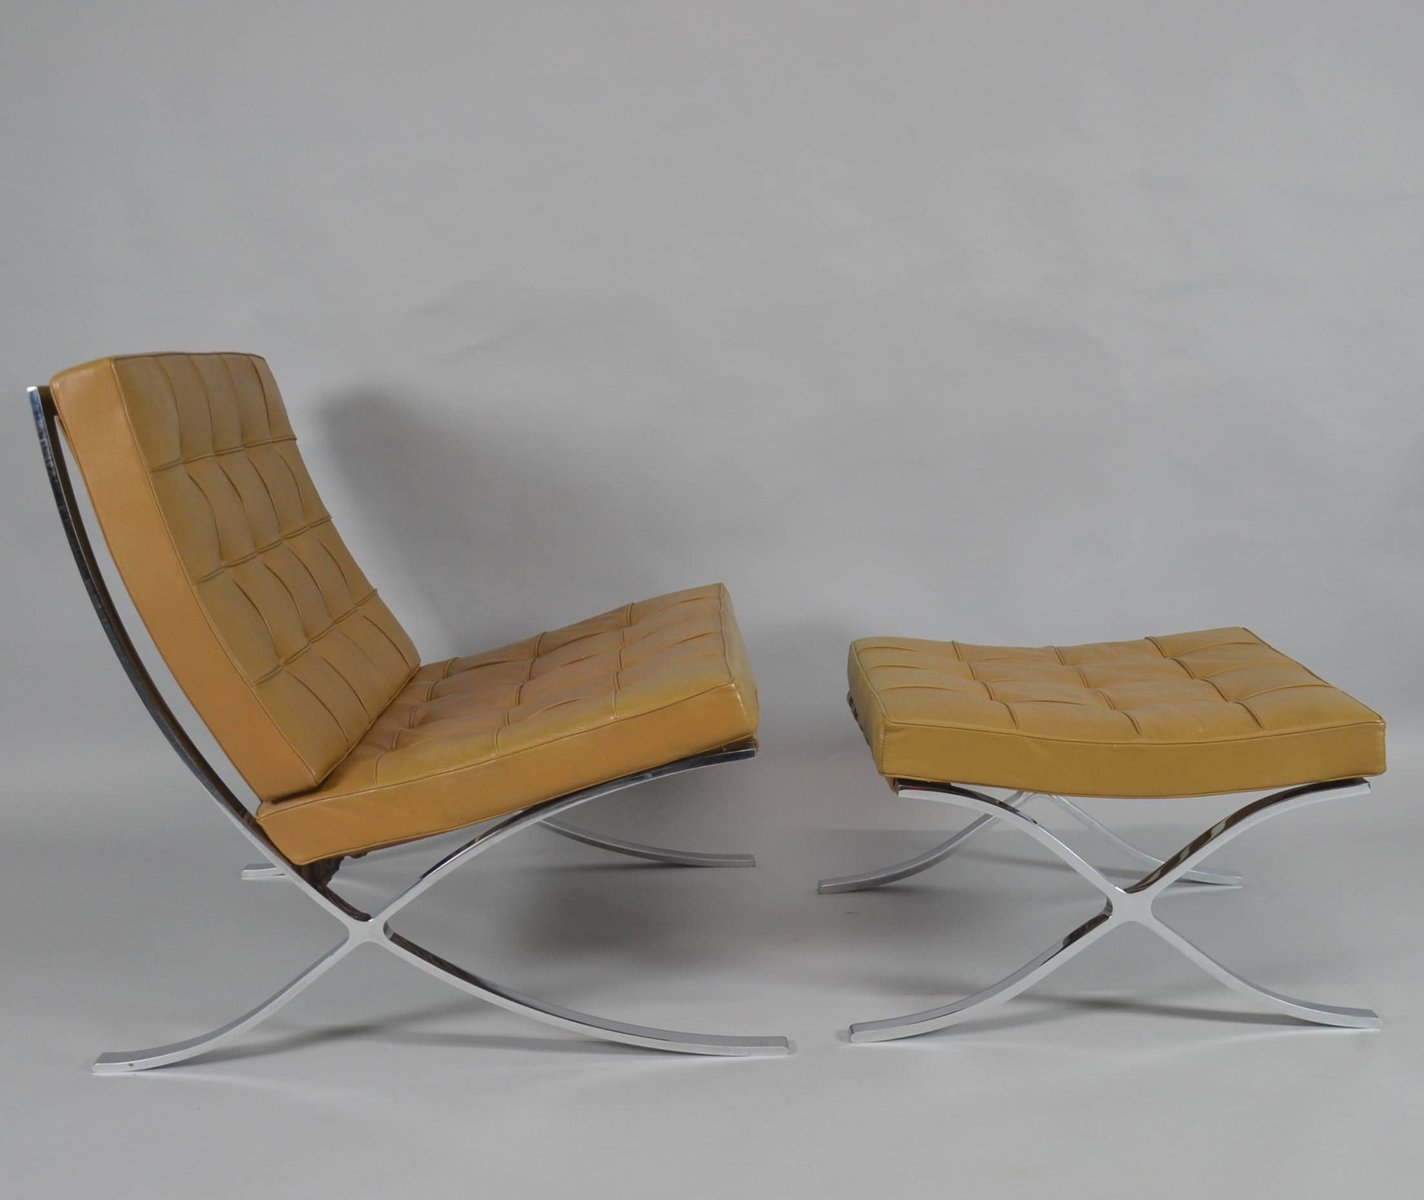 Image result for Barcelona chair